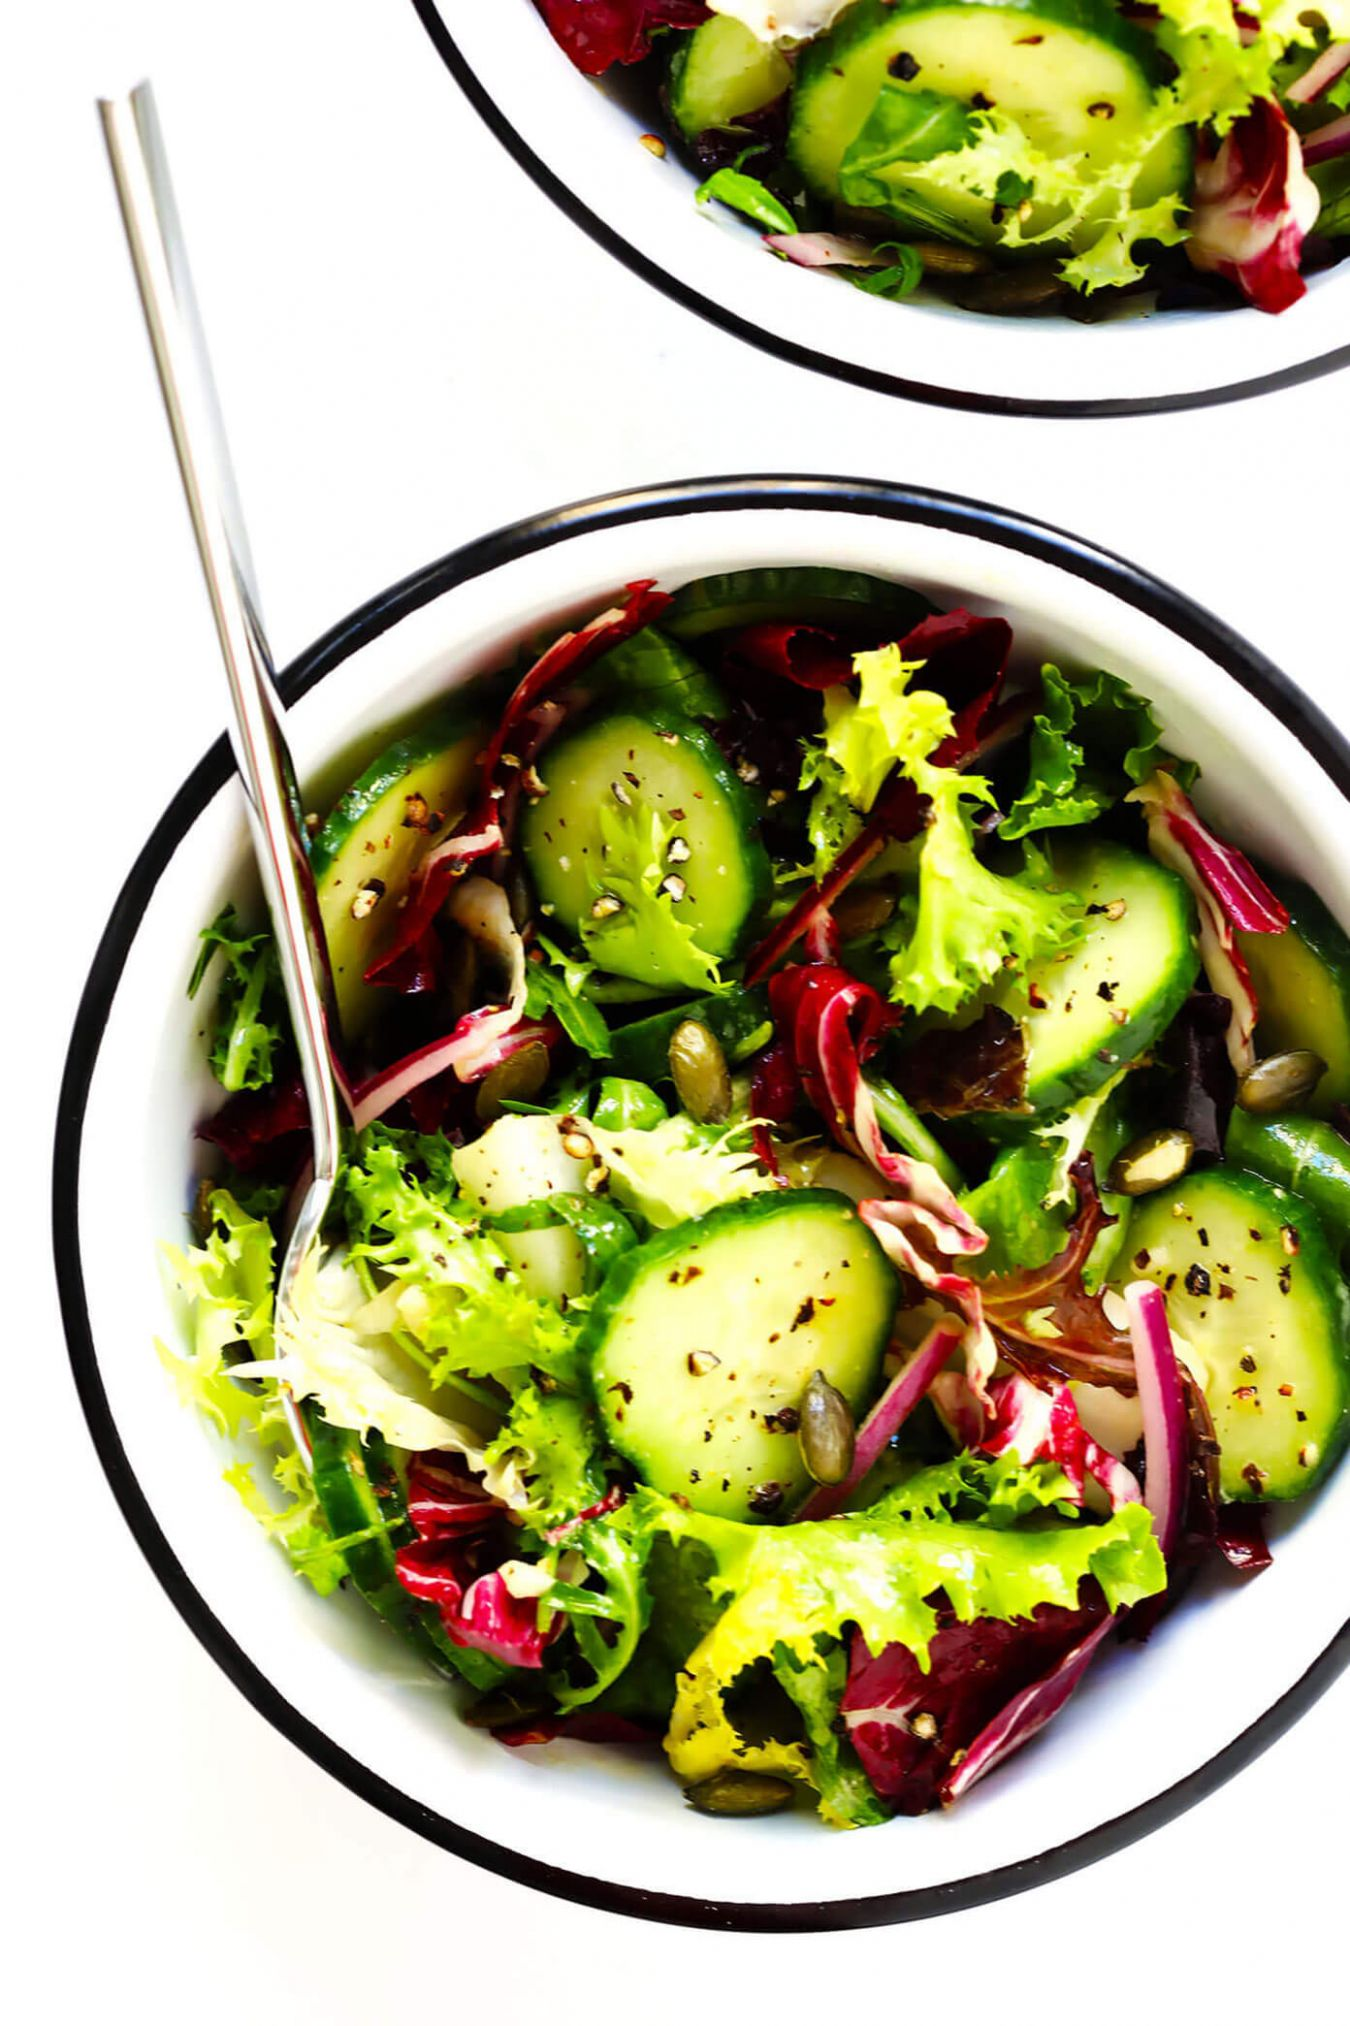 Everyday Salad | Gimme Some Oven - Salad Recipes You Can Make The Day Before